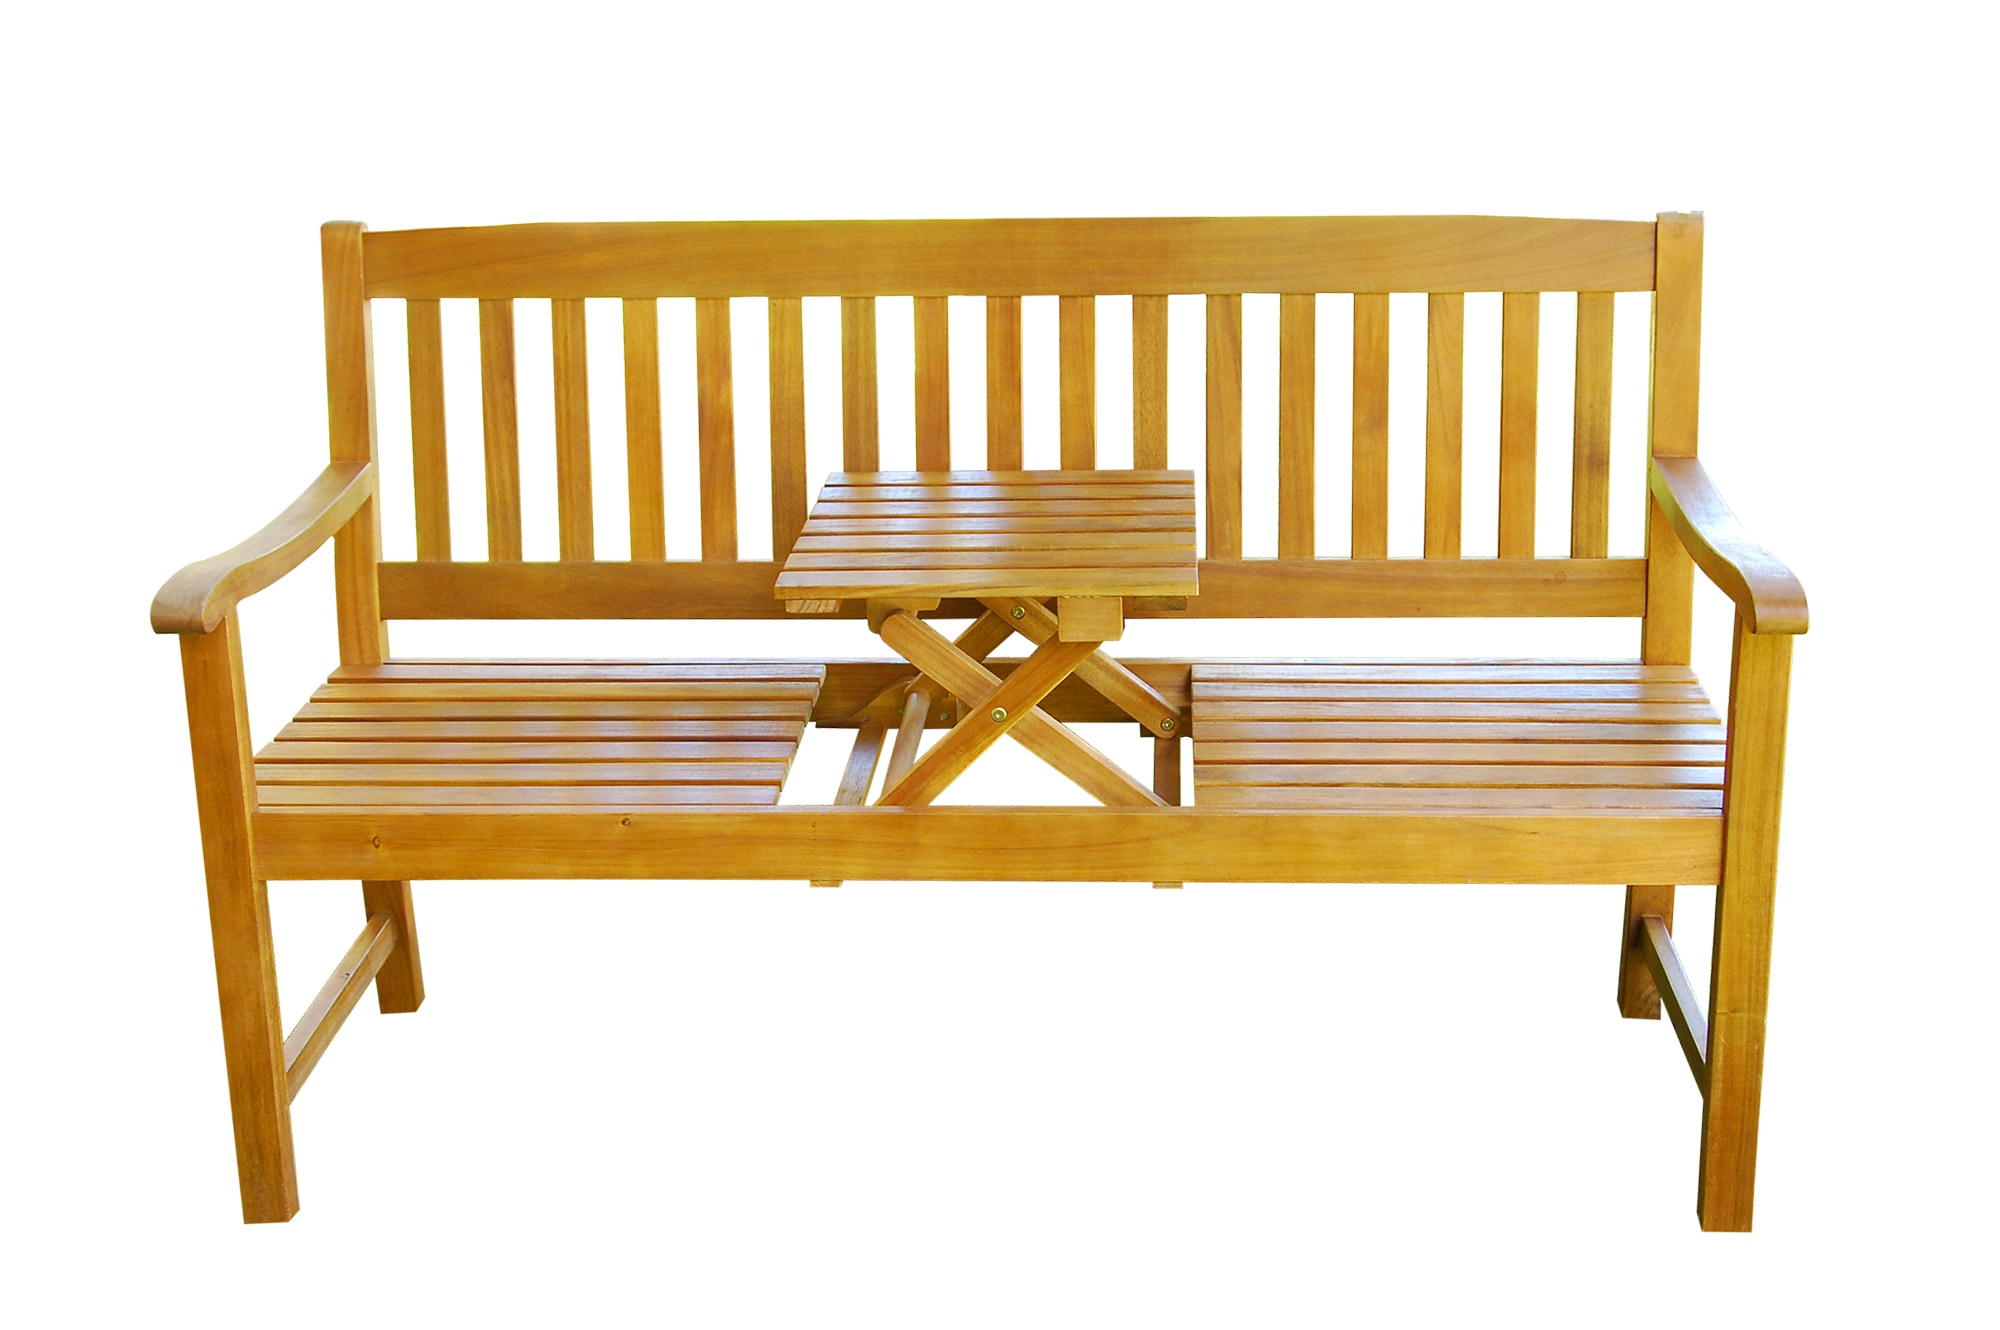 Kontiki Porch Seating Wood Benches Kitsilano Bench With Collapsible Table